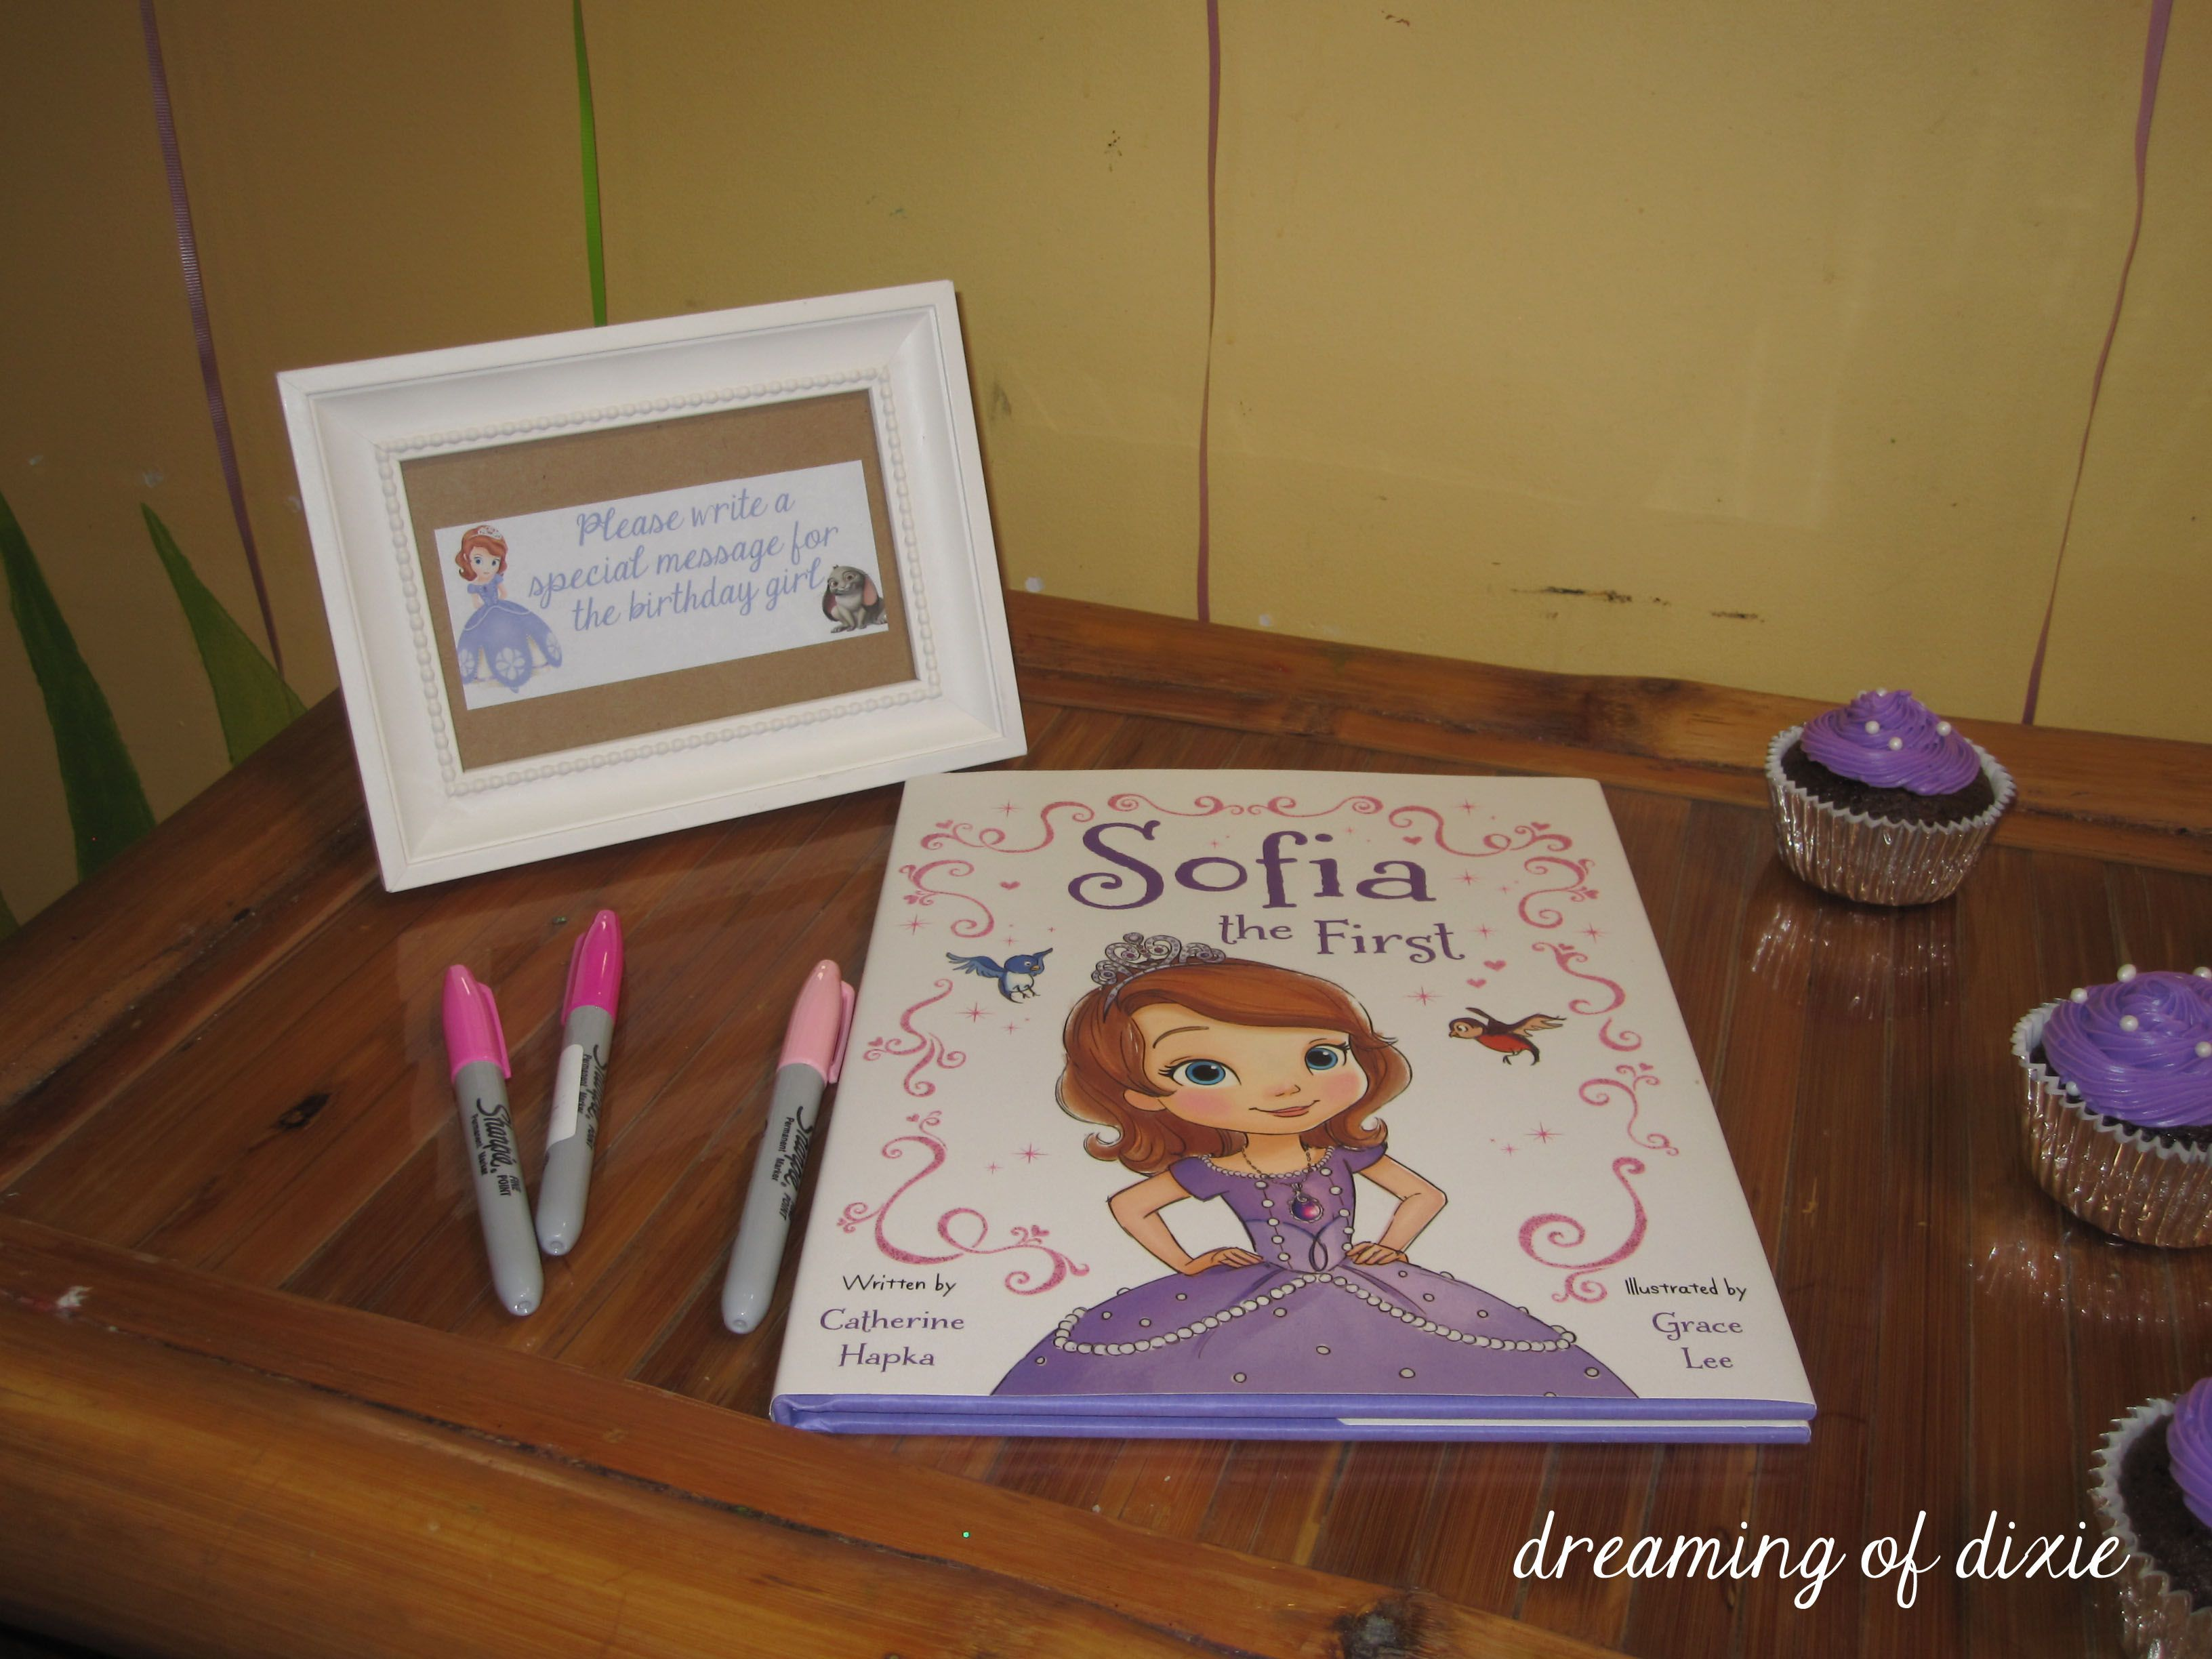 sofia the first book used as a guestbook for the birthday girl to rh pinterest com